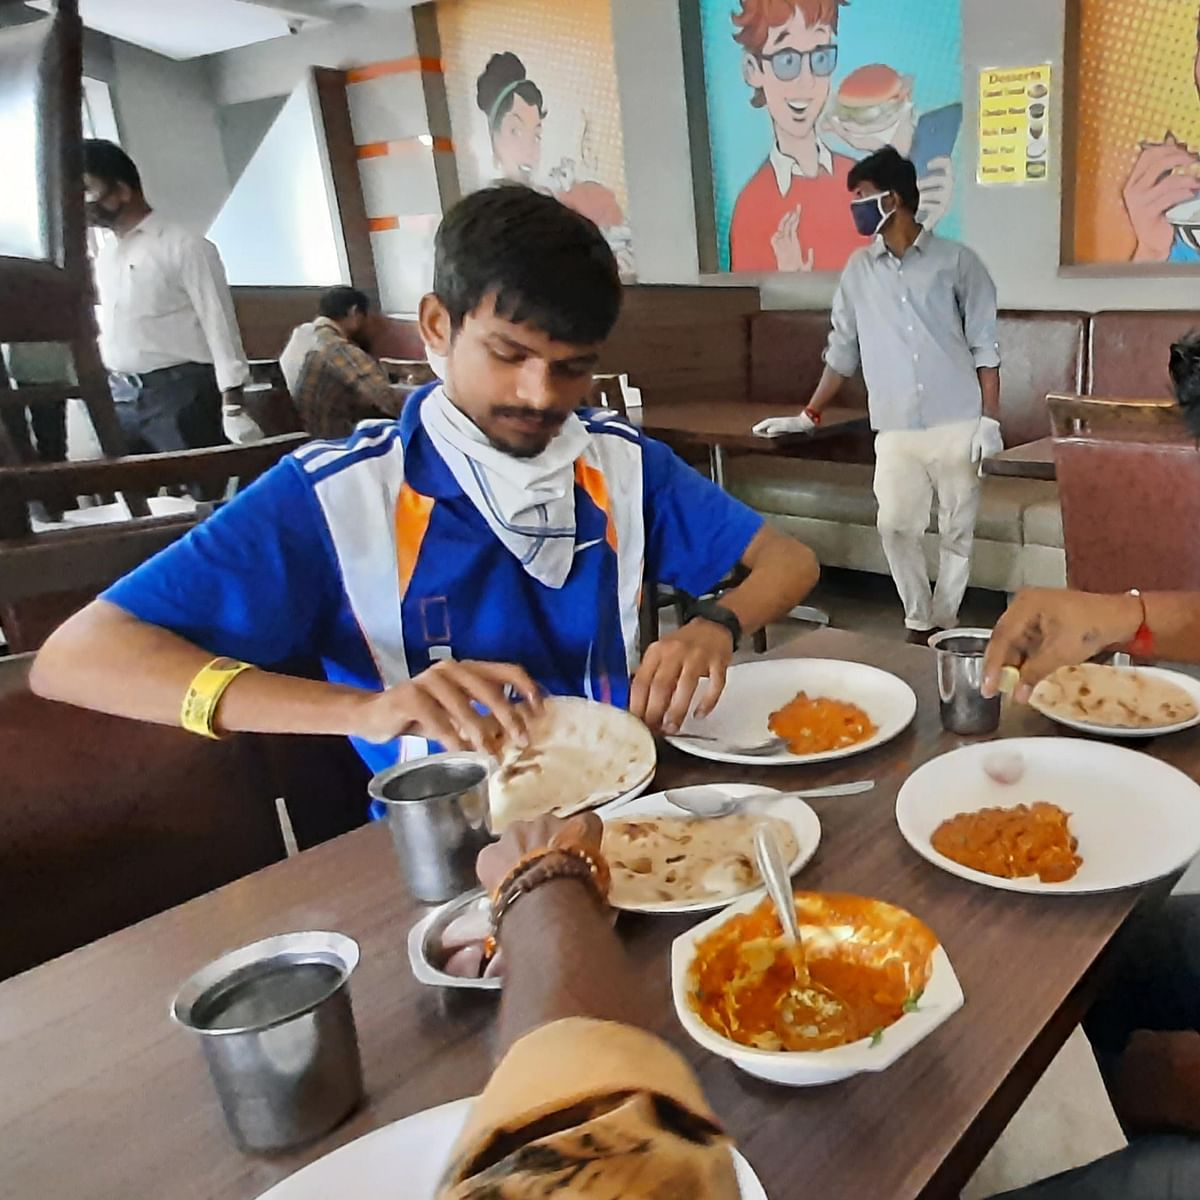 In Pics: As restaurants open after COVID-19 lockdown, Mumbaikars finally get to eat out